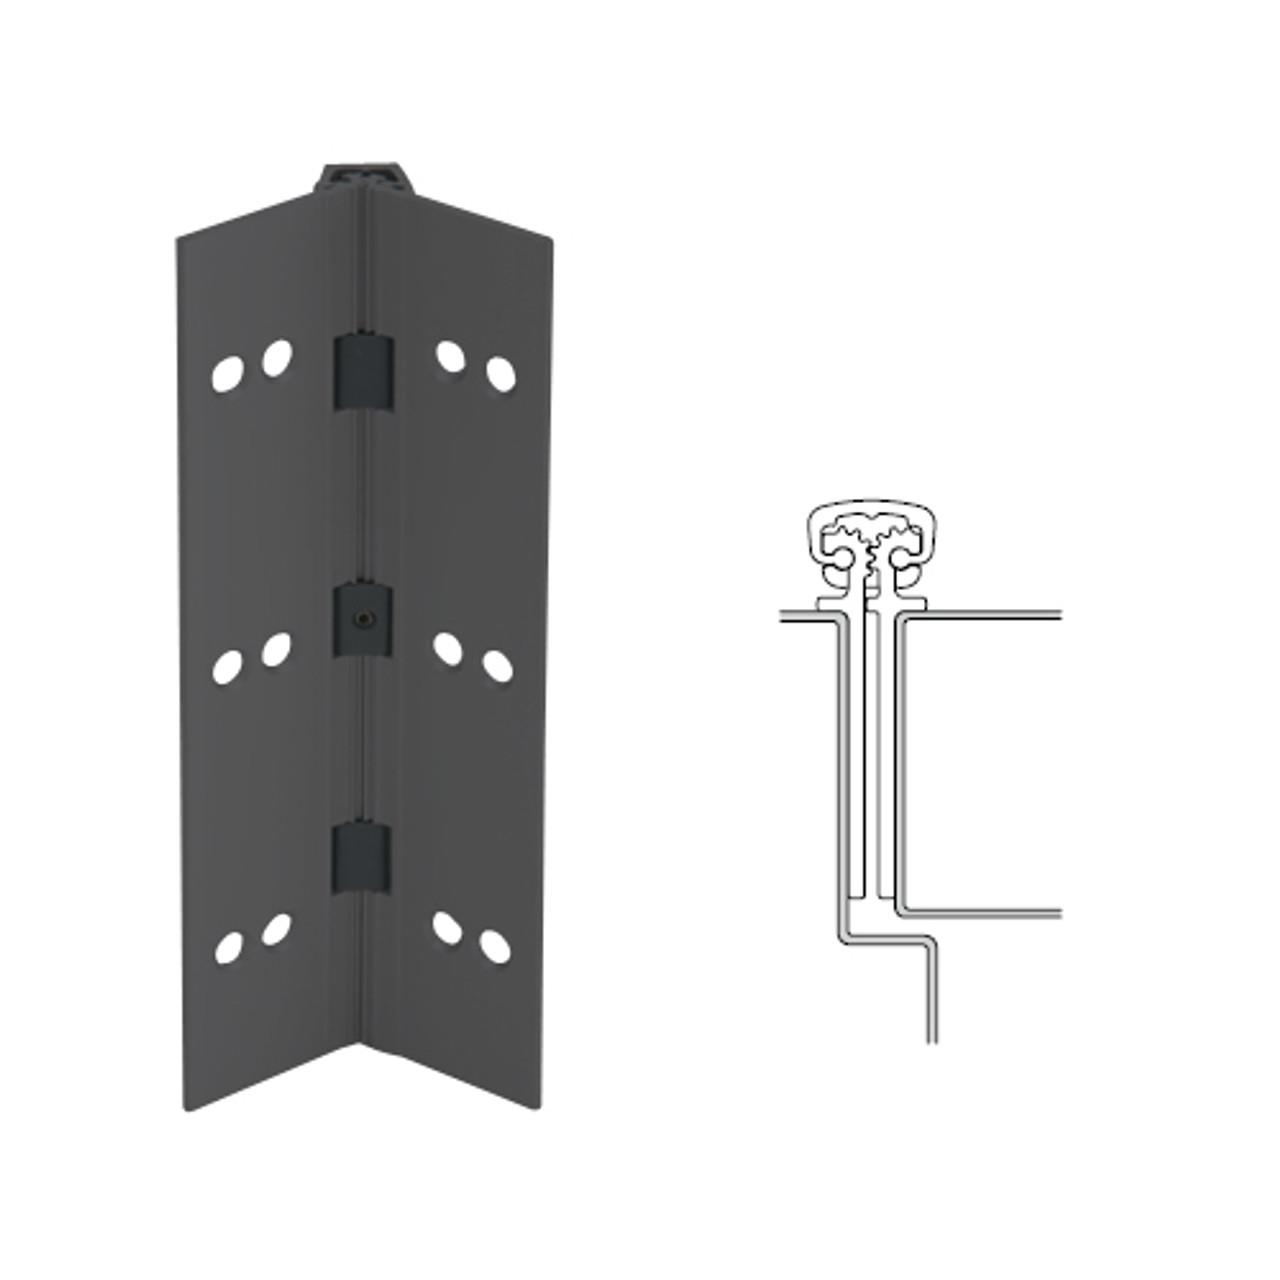 027XY-315AN-120-SECWDWD IVES Full Mortise Continuous Geared Hinges with Security Screws - Hex Pin Drive in Anodized Black